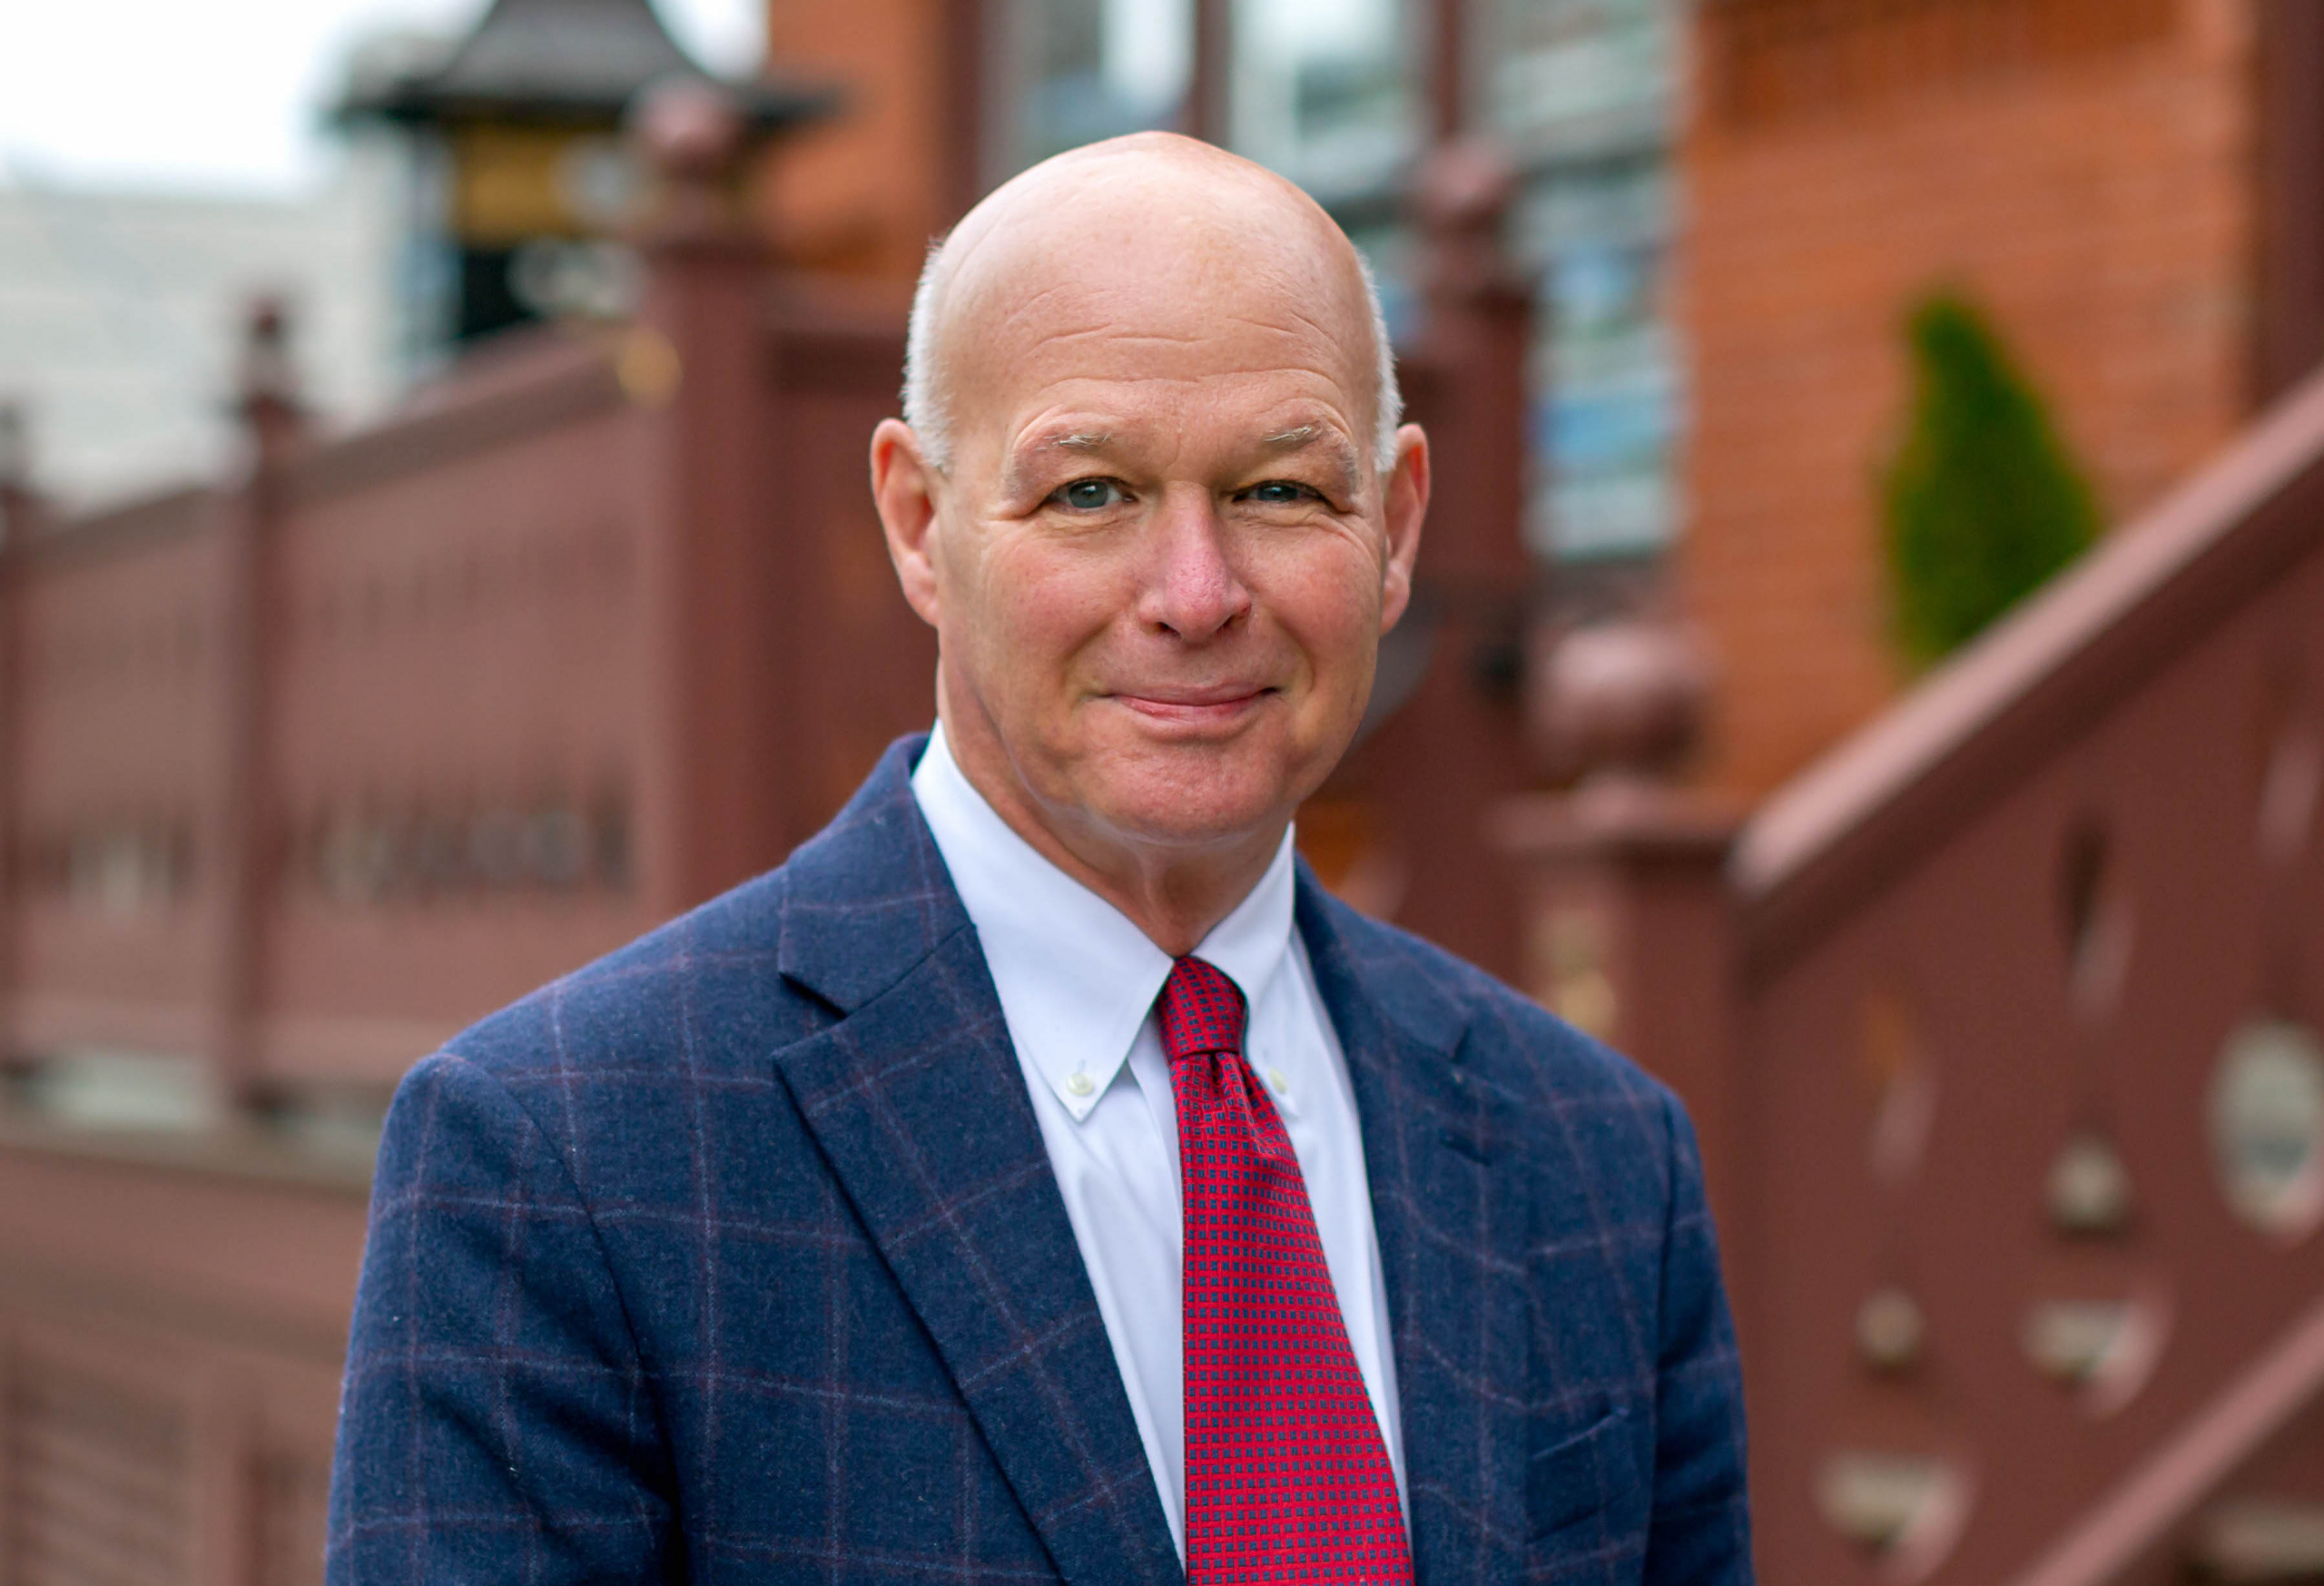 STEPHEN LAKE, ACCOMPLISHED INDUSTRY VETERAN, AFFILIATES WITH LILA DELMAN REAL ESTATE